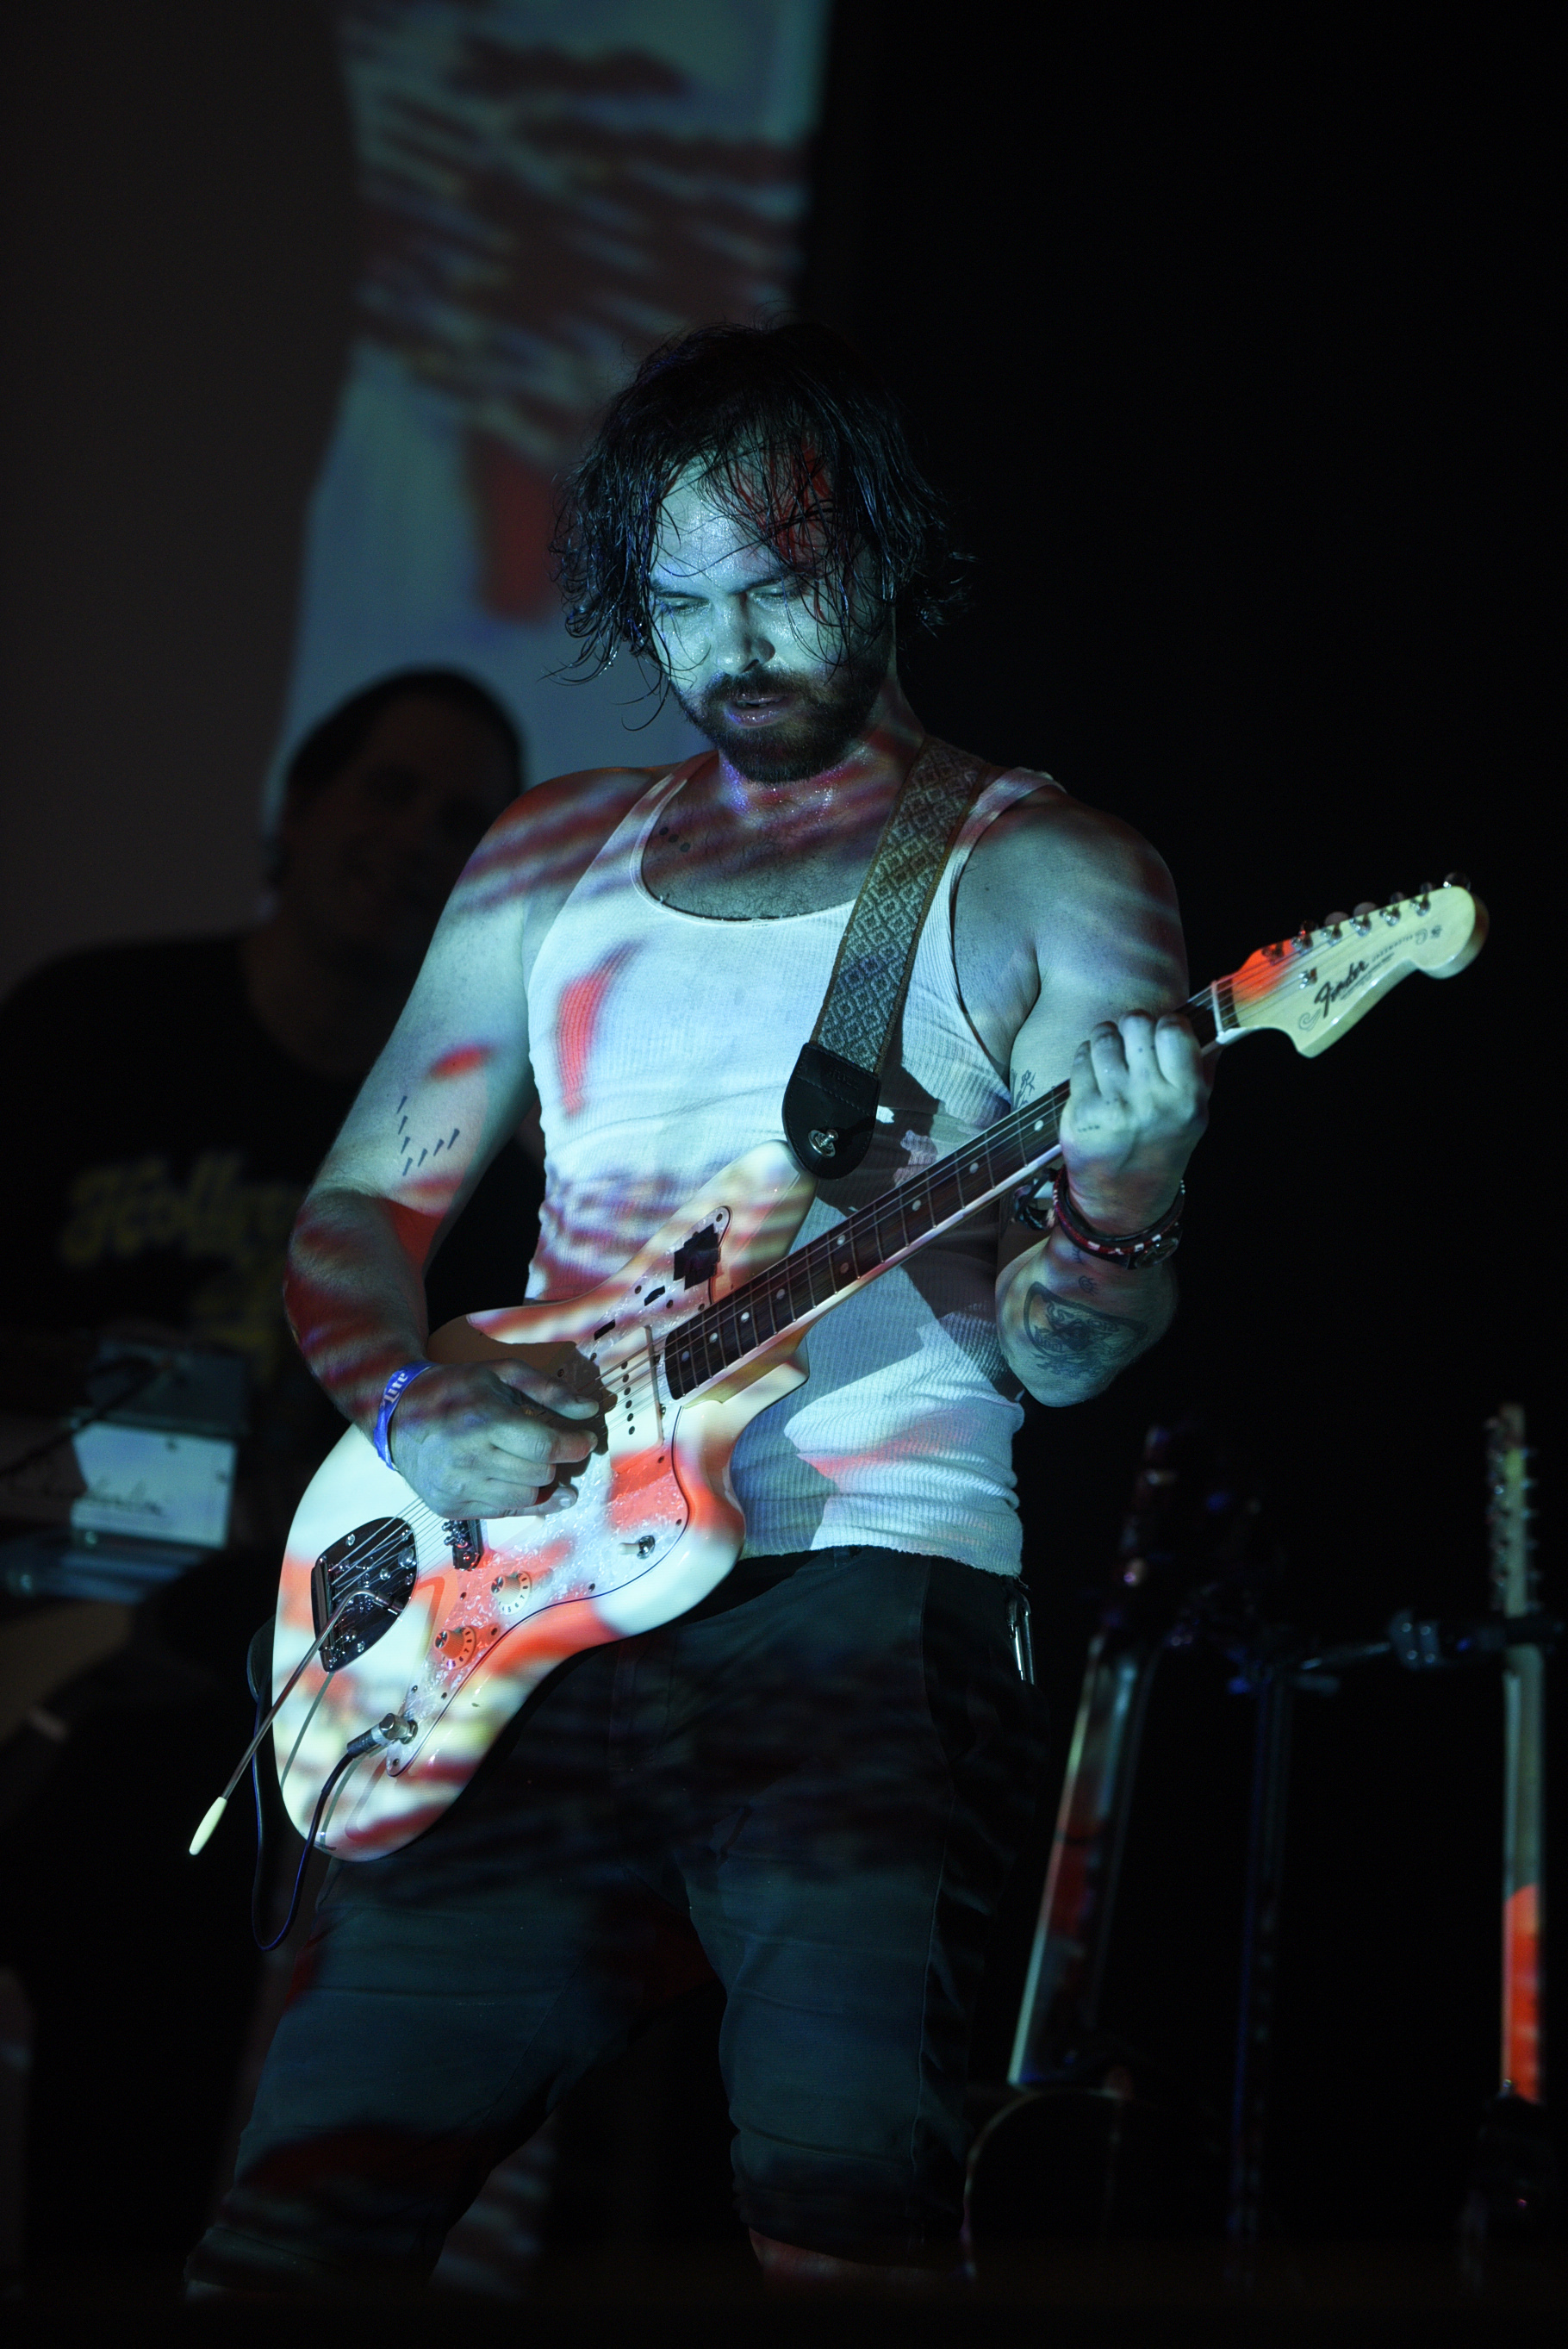 During his performance, Rose-Garcia said he grew up playing in Zilker Park.